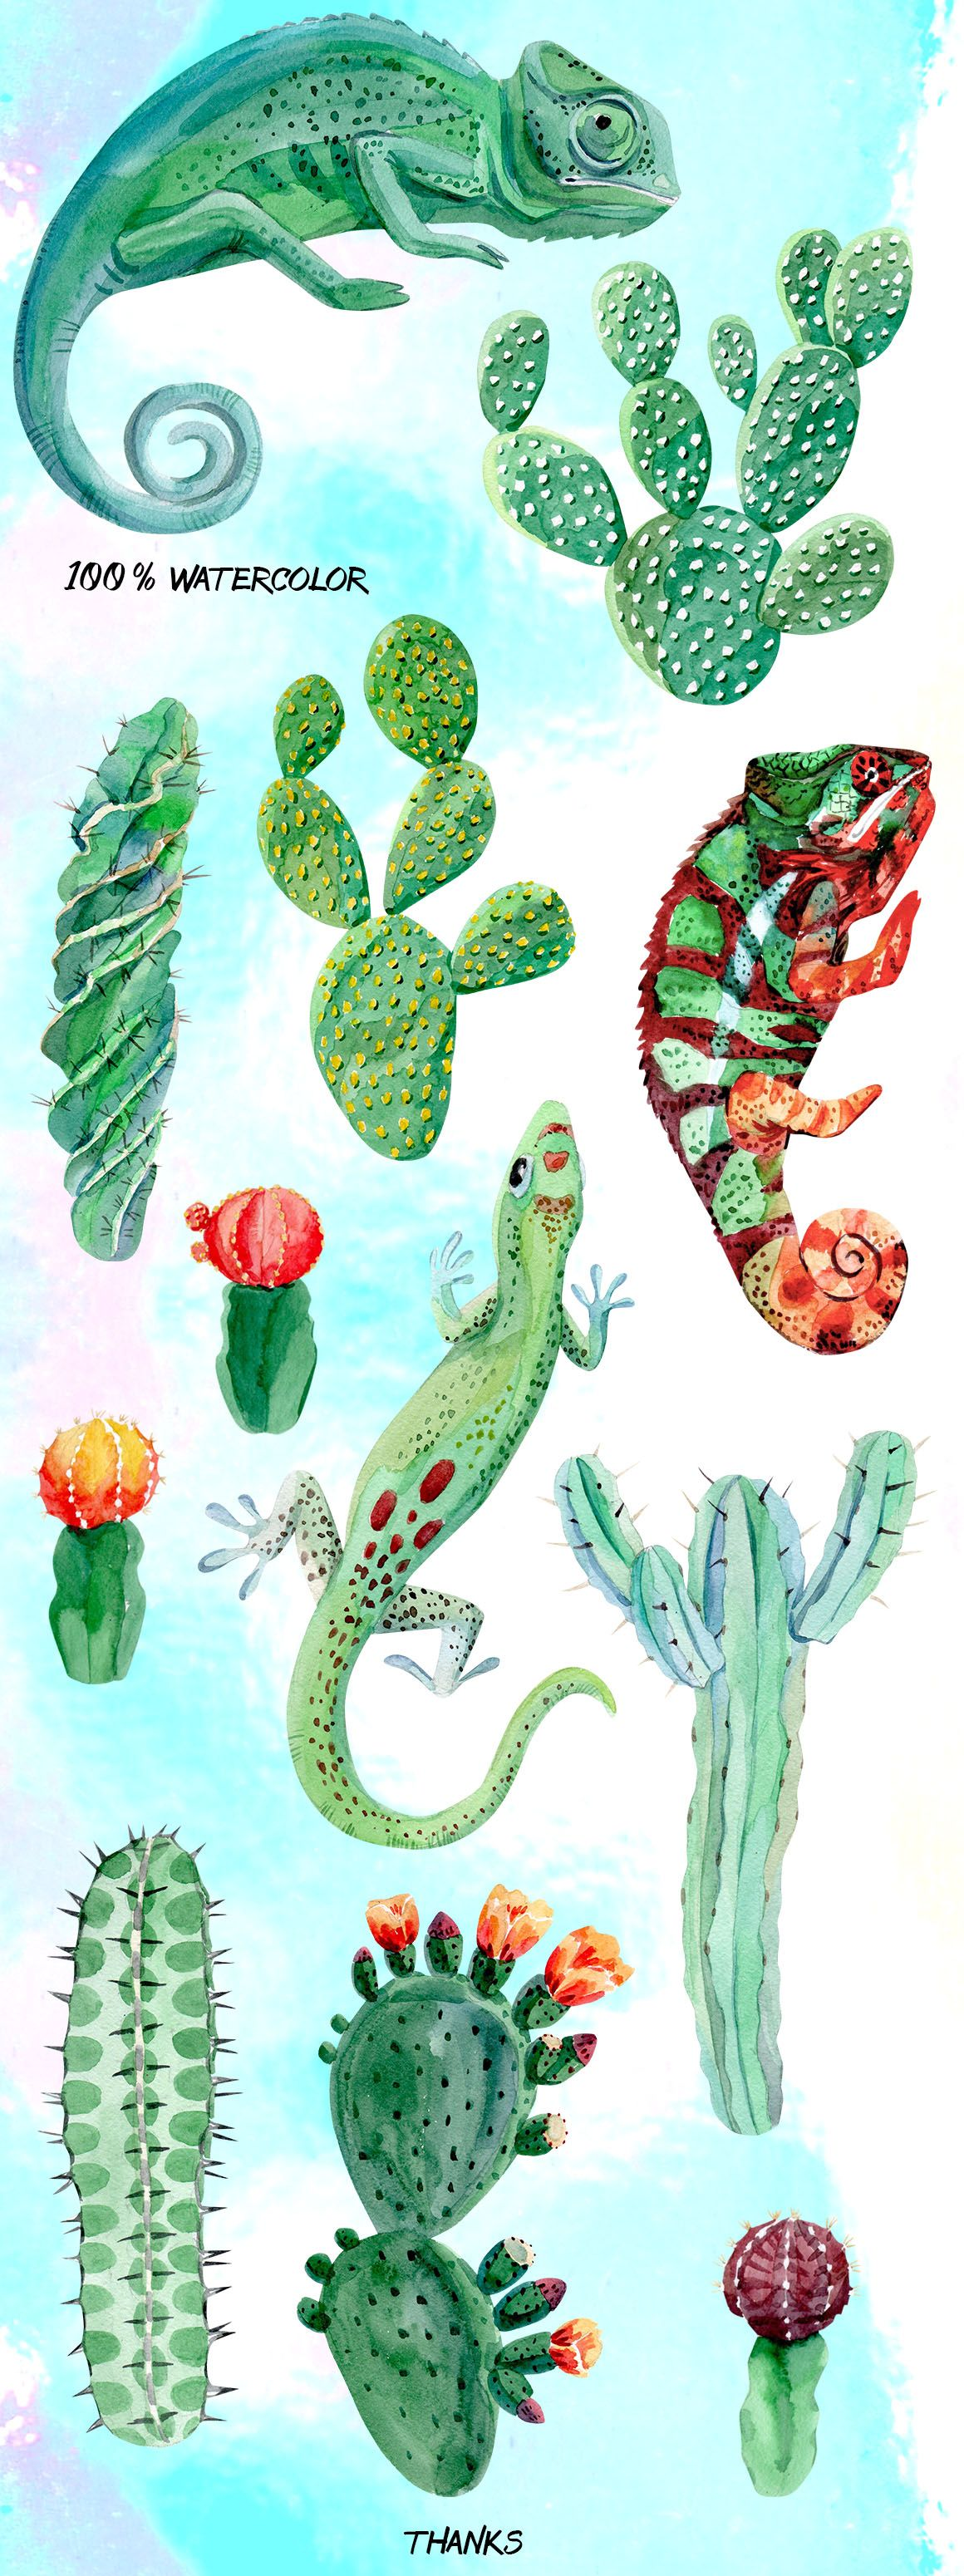 Chameleon and cactus. Watercolor set | Lagartos, Marrón y Cactus